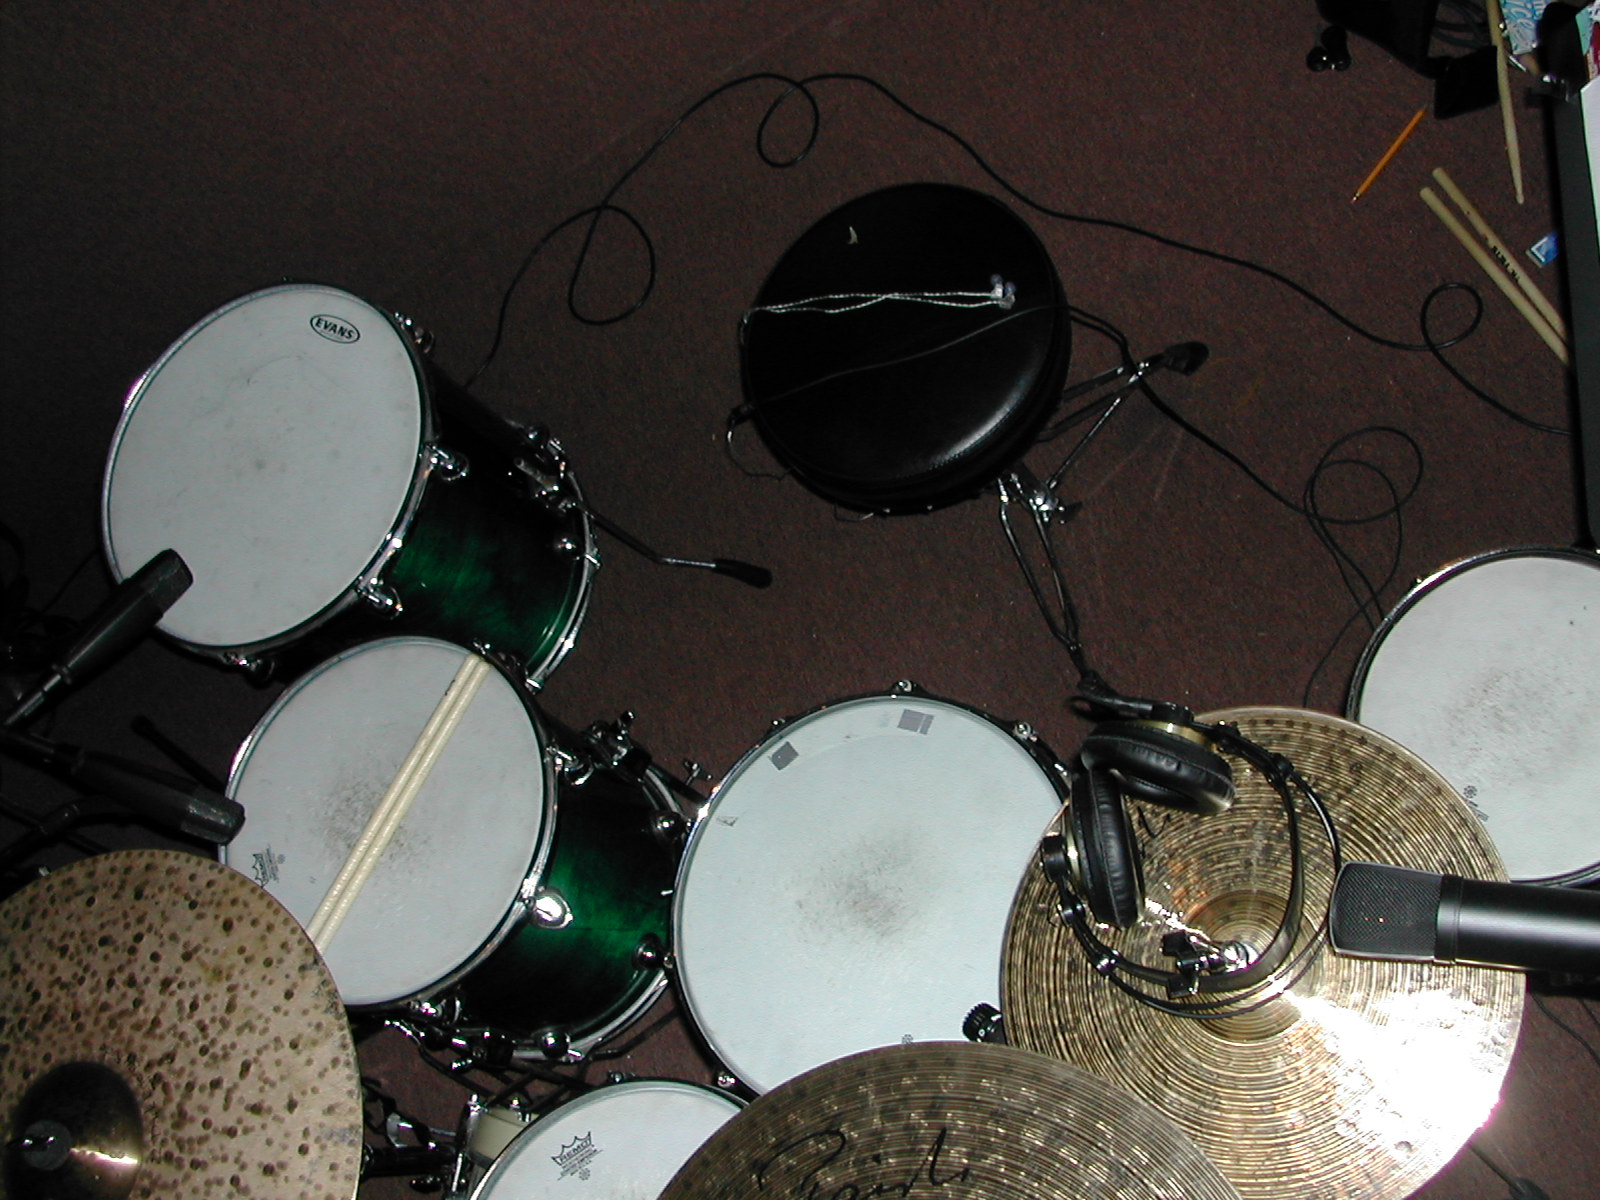 Pictures Of Mic U0026 39 Ed Up Drum Kits In The Studio